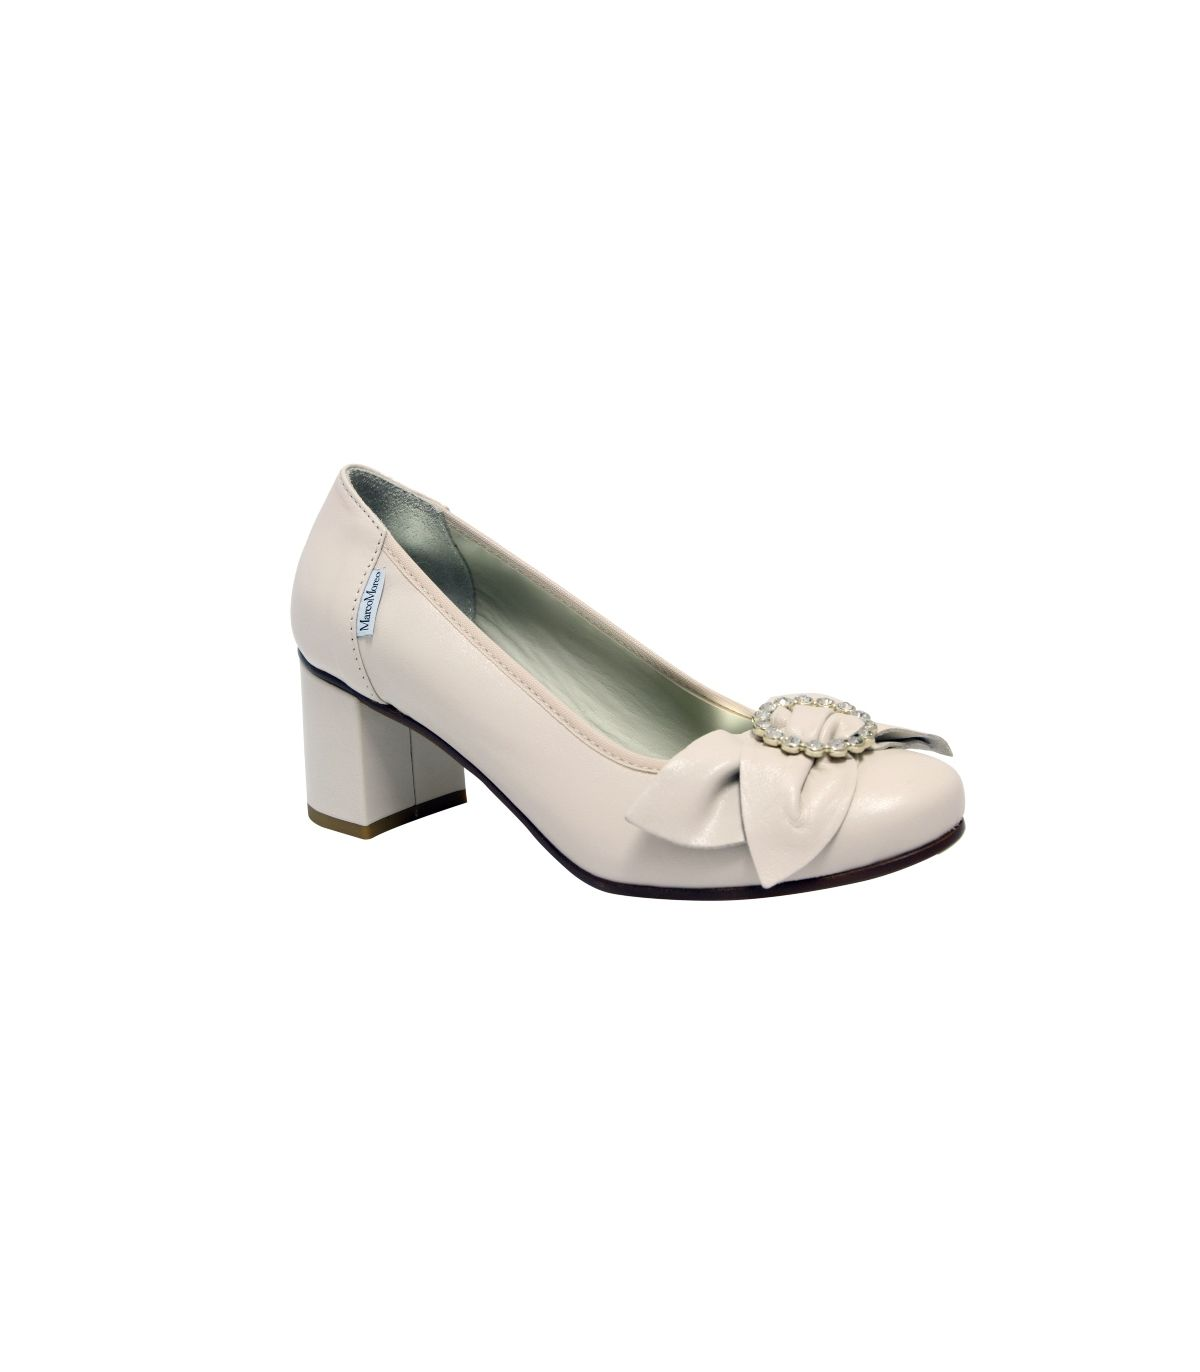 MARCO MOREO Cream Leather Block Heel With Bow Detail Image